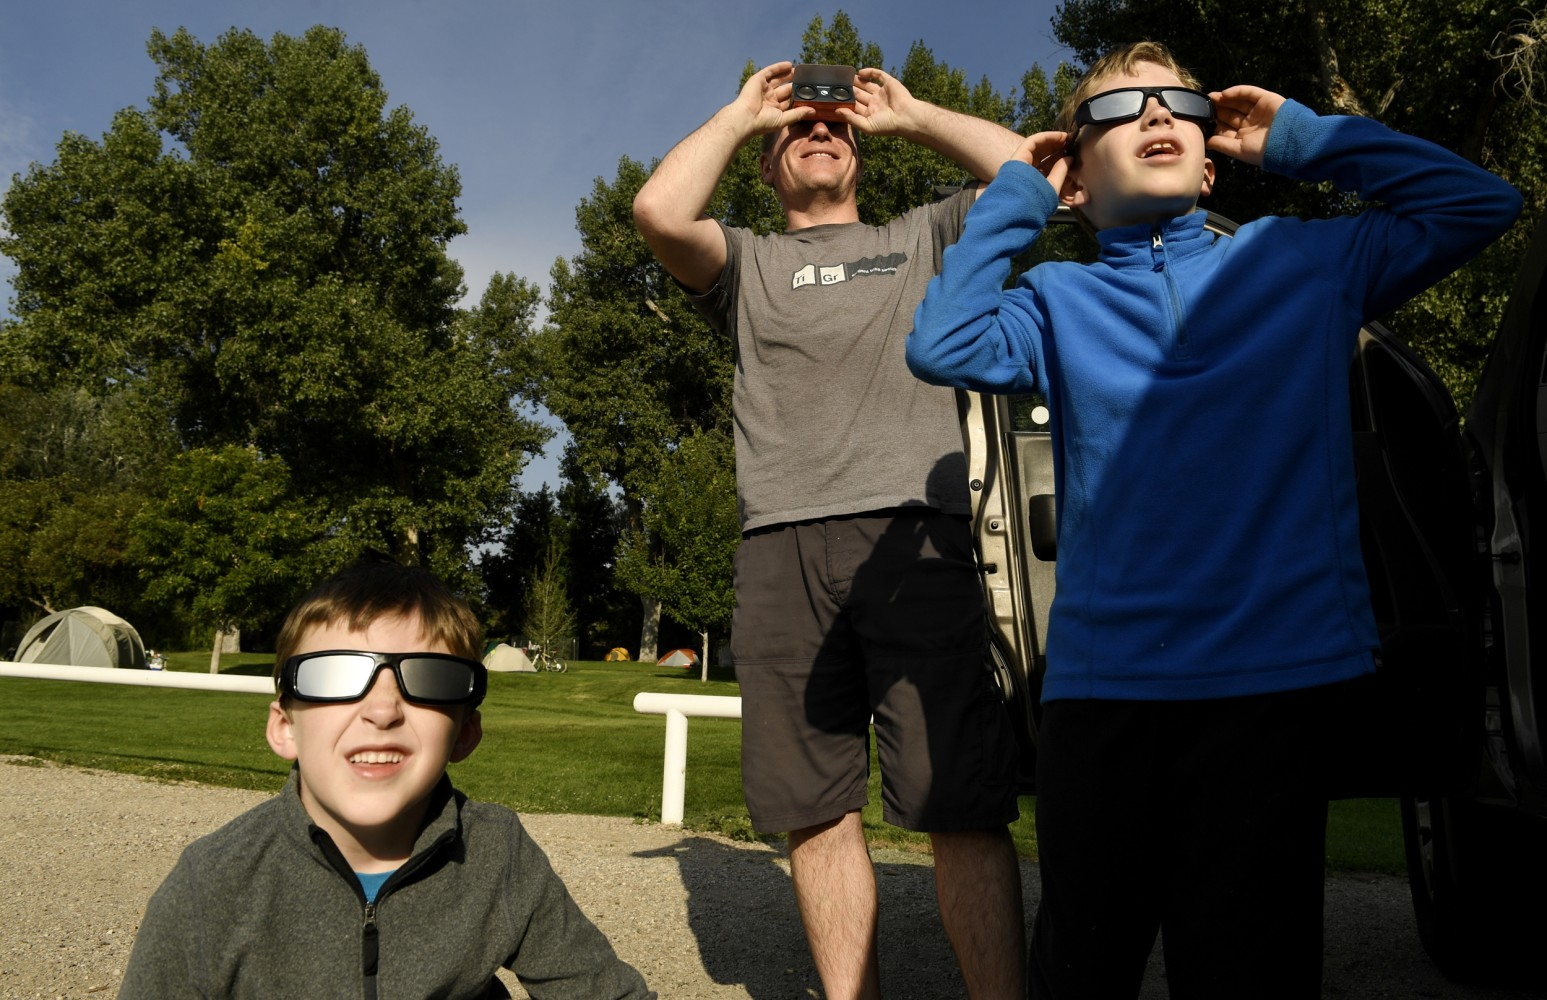 Solar eclipse 2017 weather forecast for NJ calls for clear skies